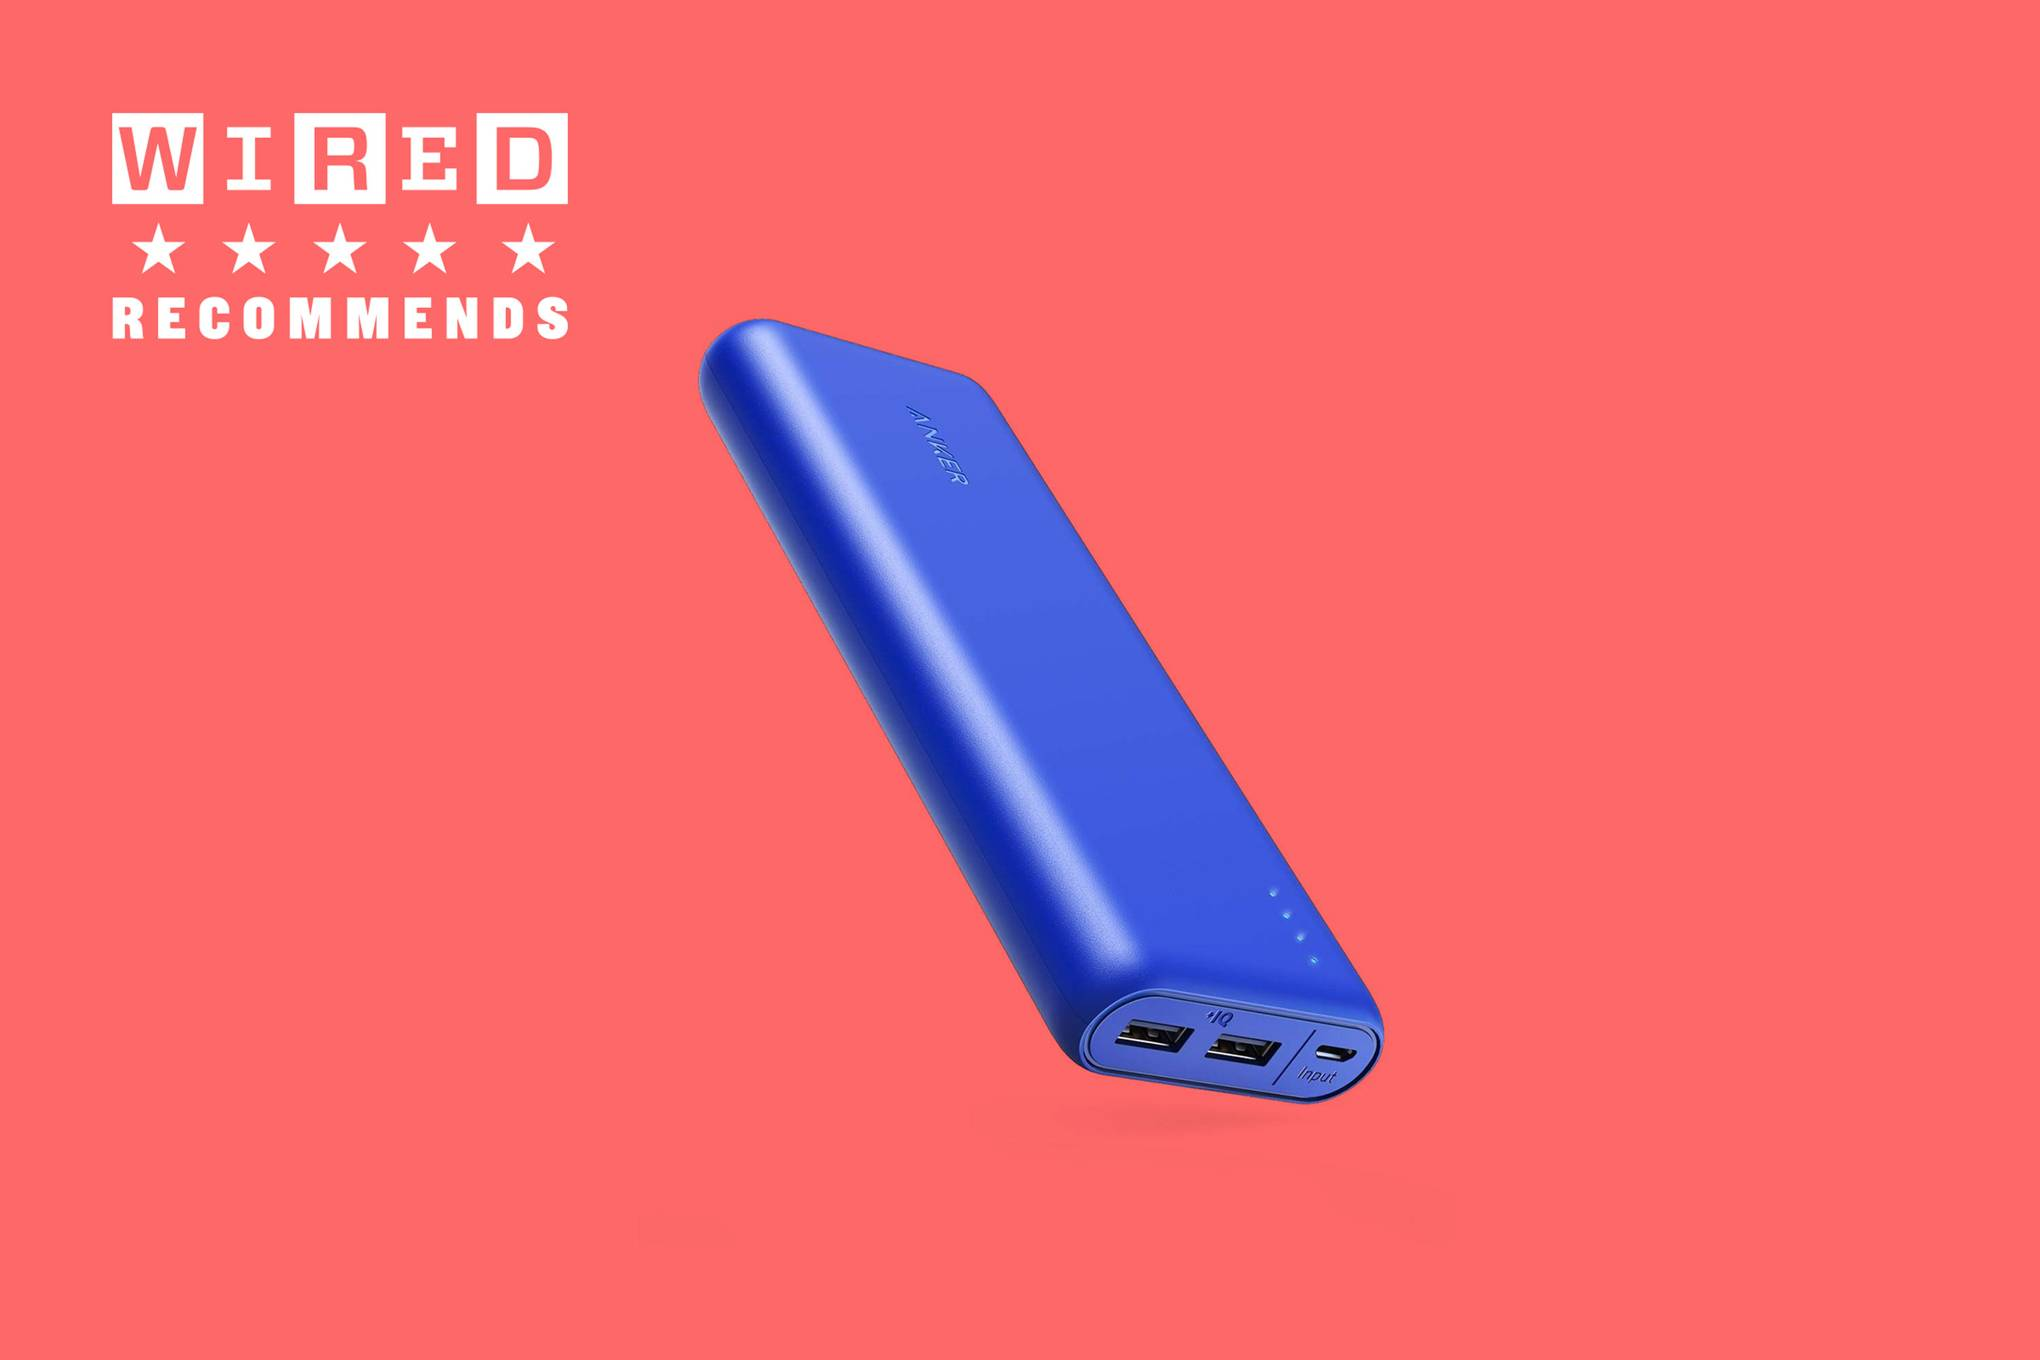 The best power banks and portable chargers in 2019 | WIRED UK